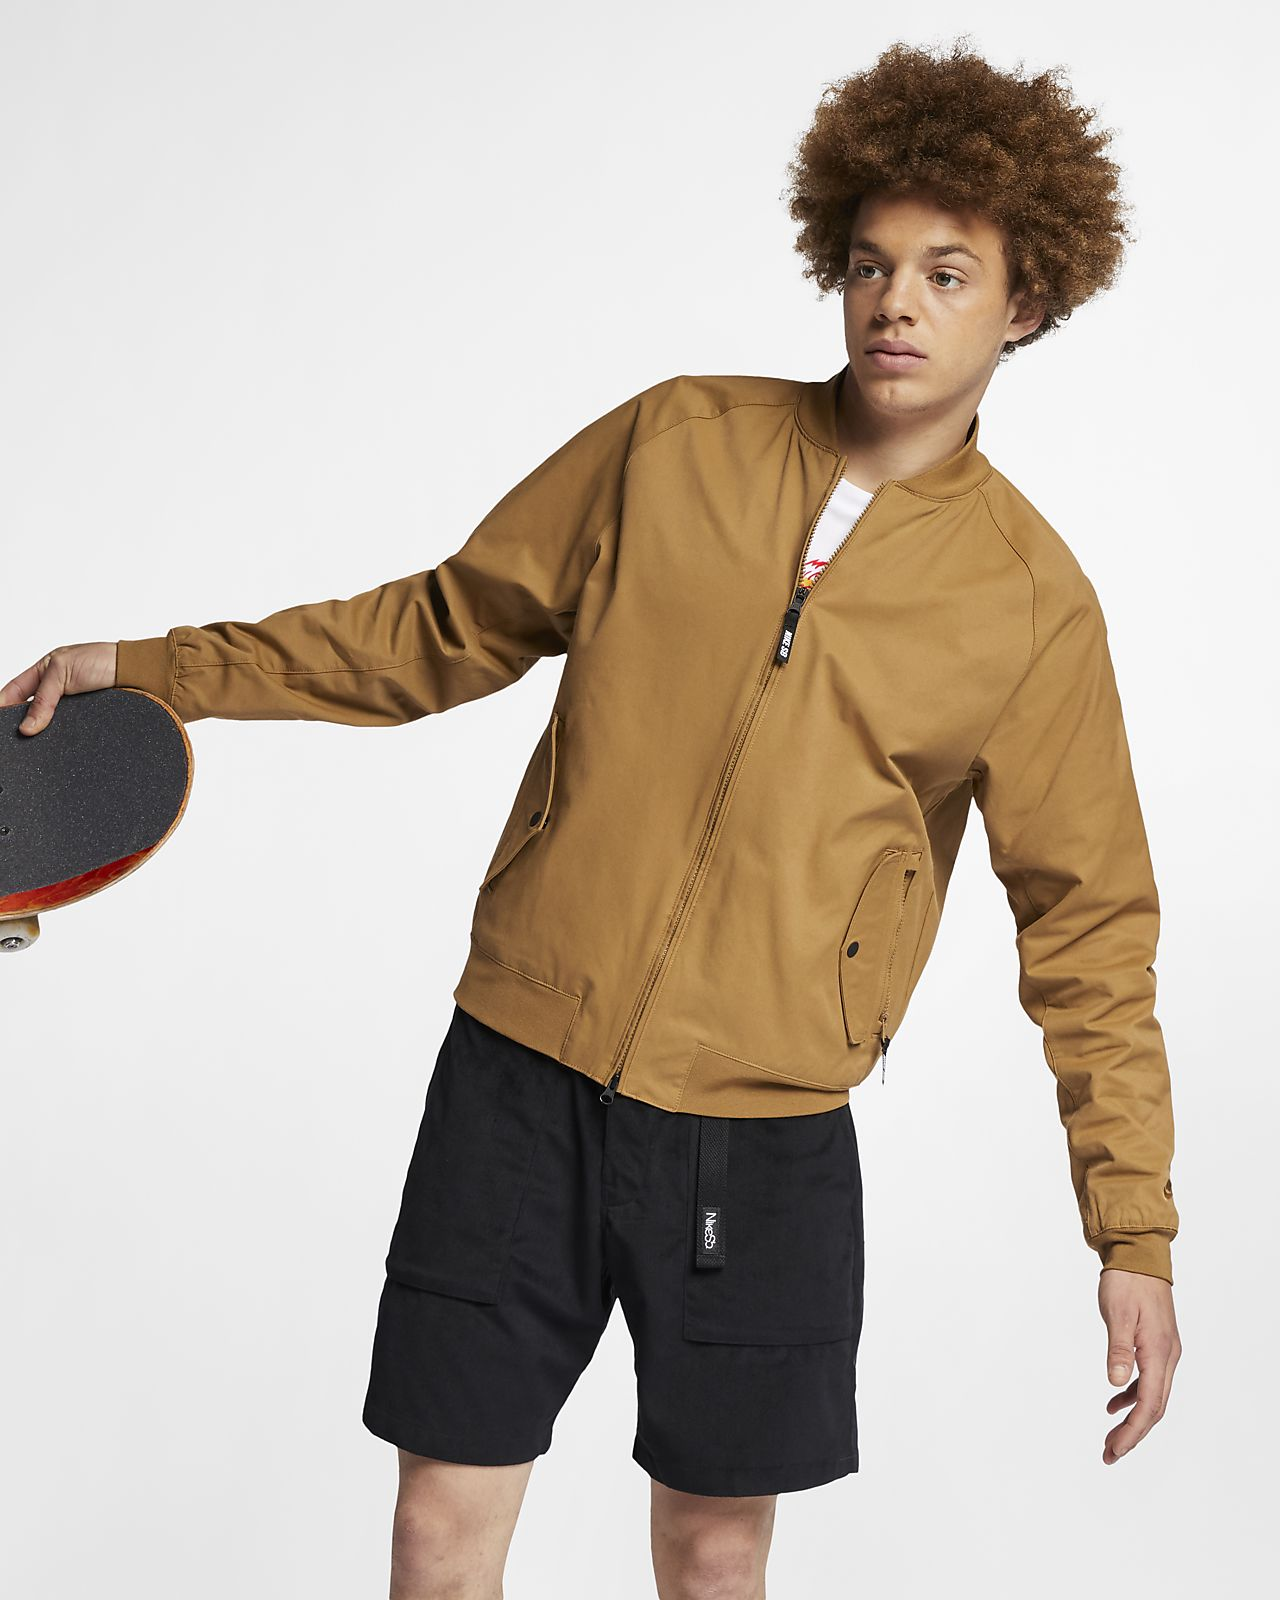 Nike SB Men's Skate Bomber Jacket